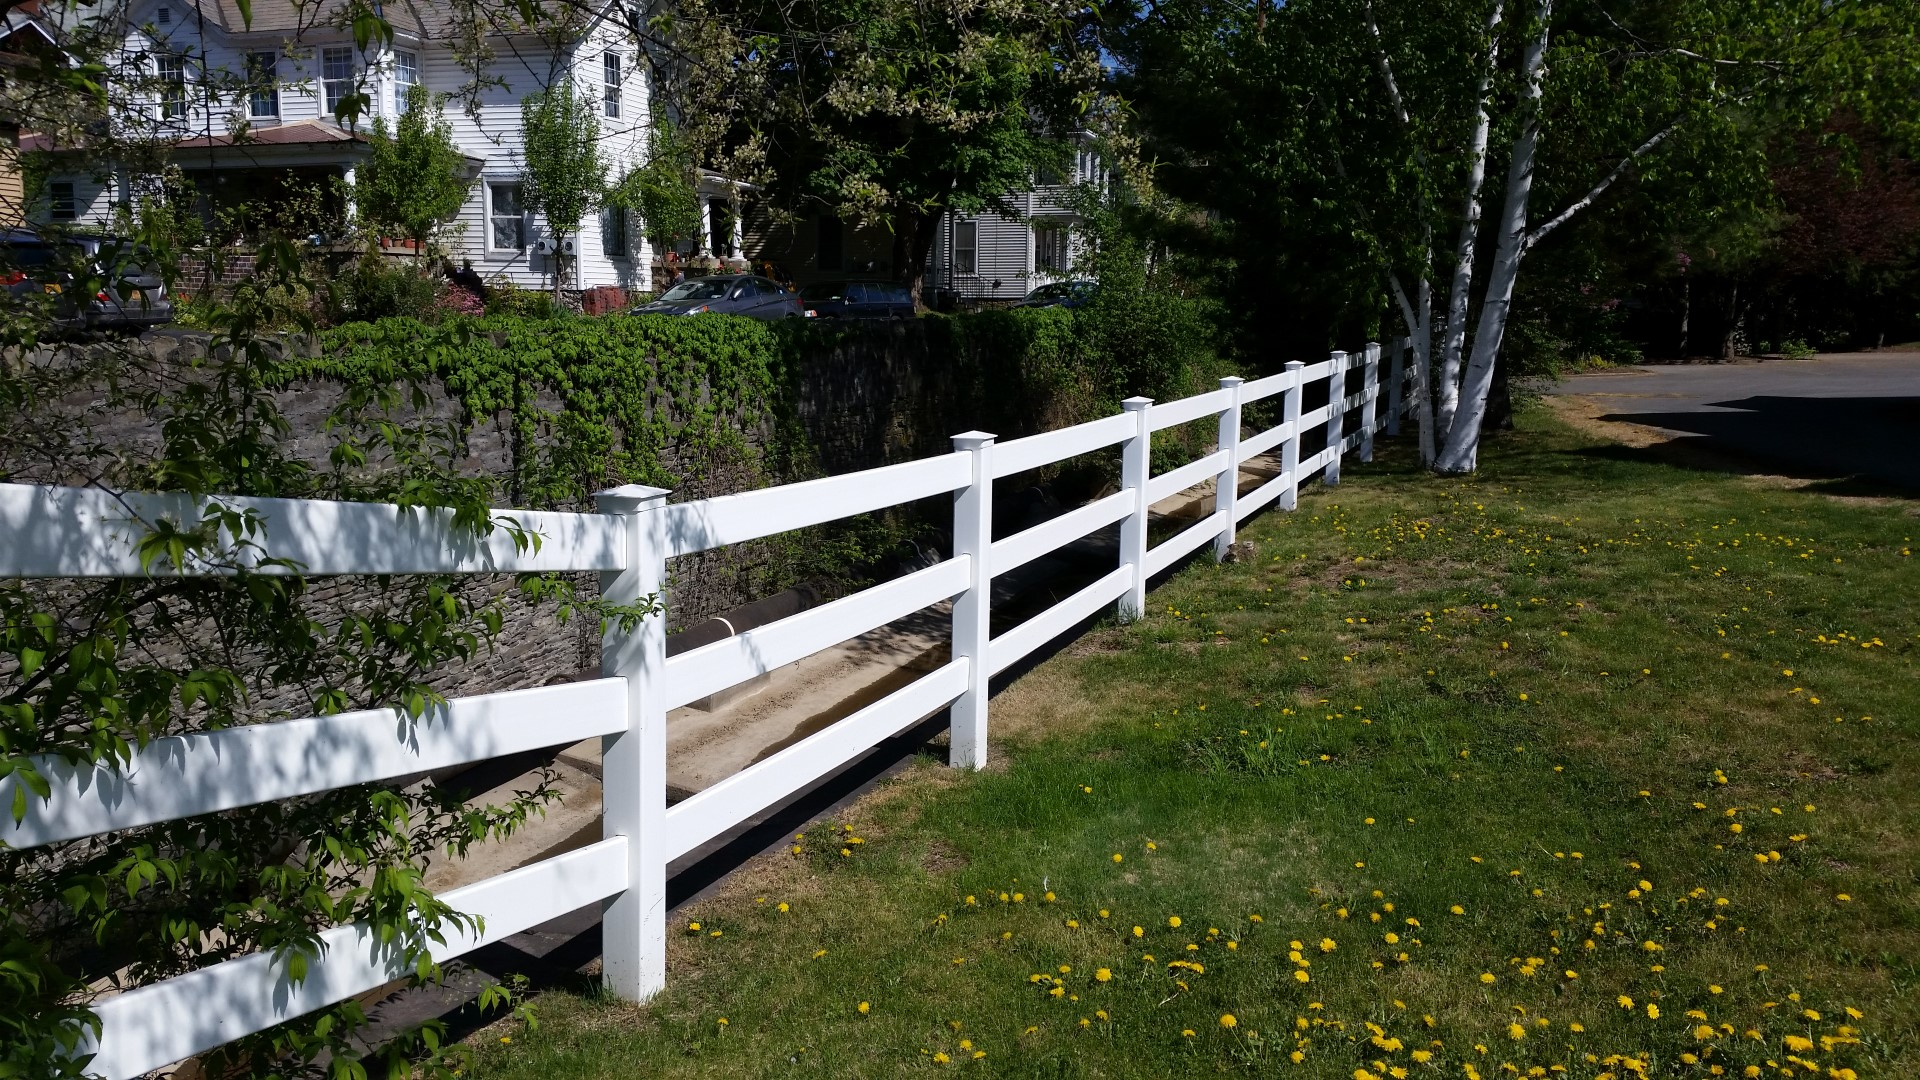 This is a 3 Rail Vinyl fence we installed in downtown Oneonta in 2013. It's on Main Street right across from the Post Office.